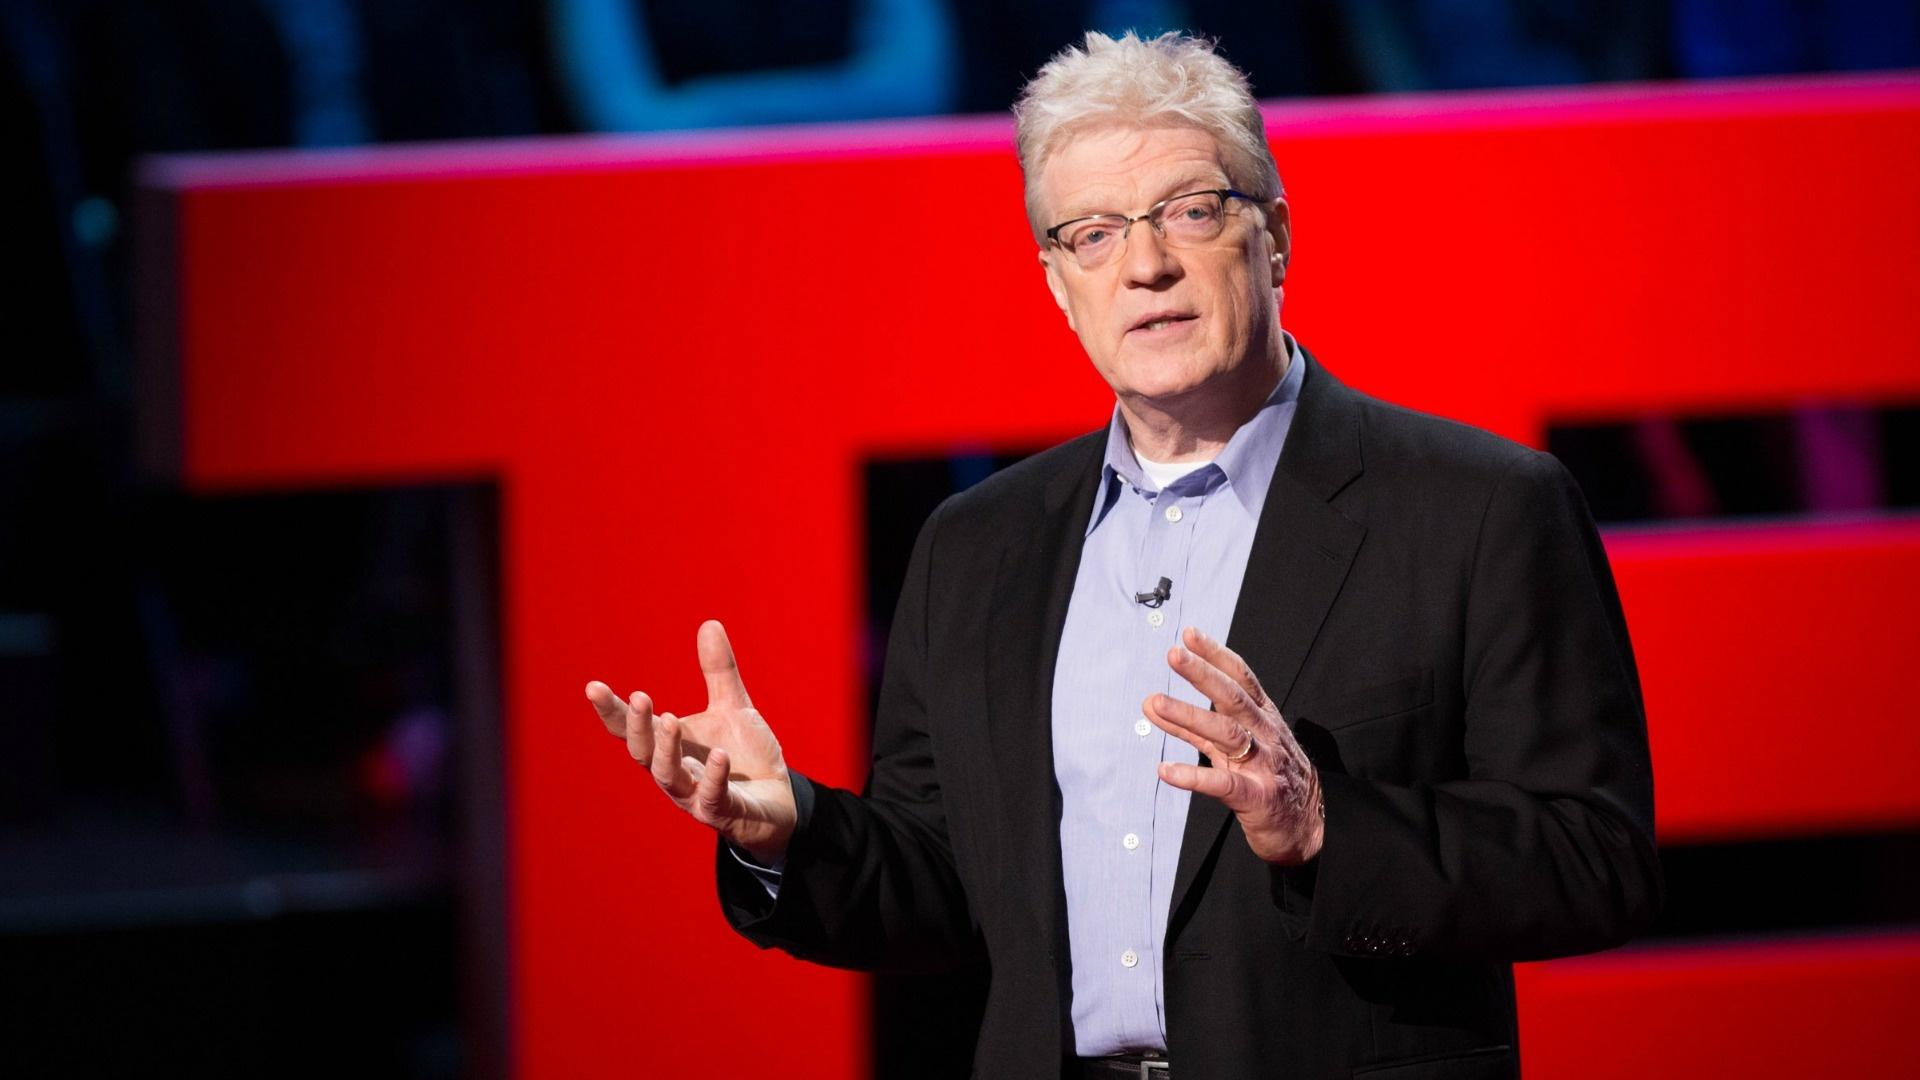 Yoto Talks TED: Sir Ken Robinson on Schools and Creativity